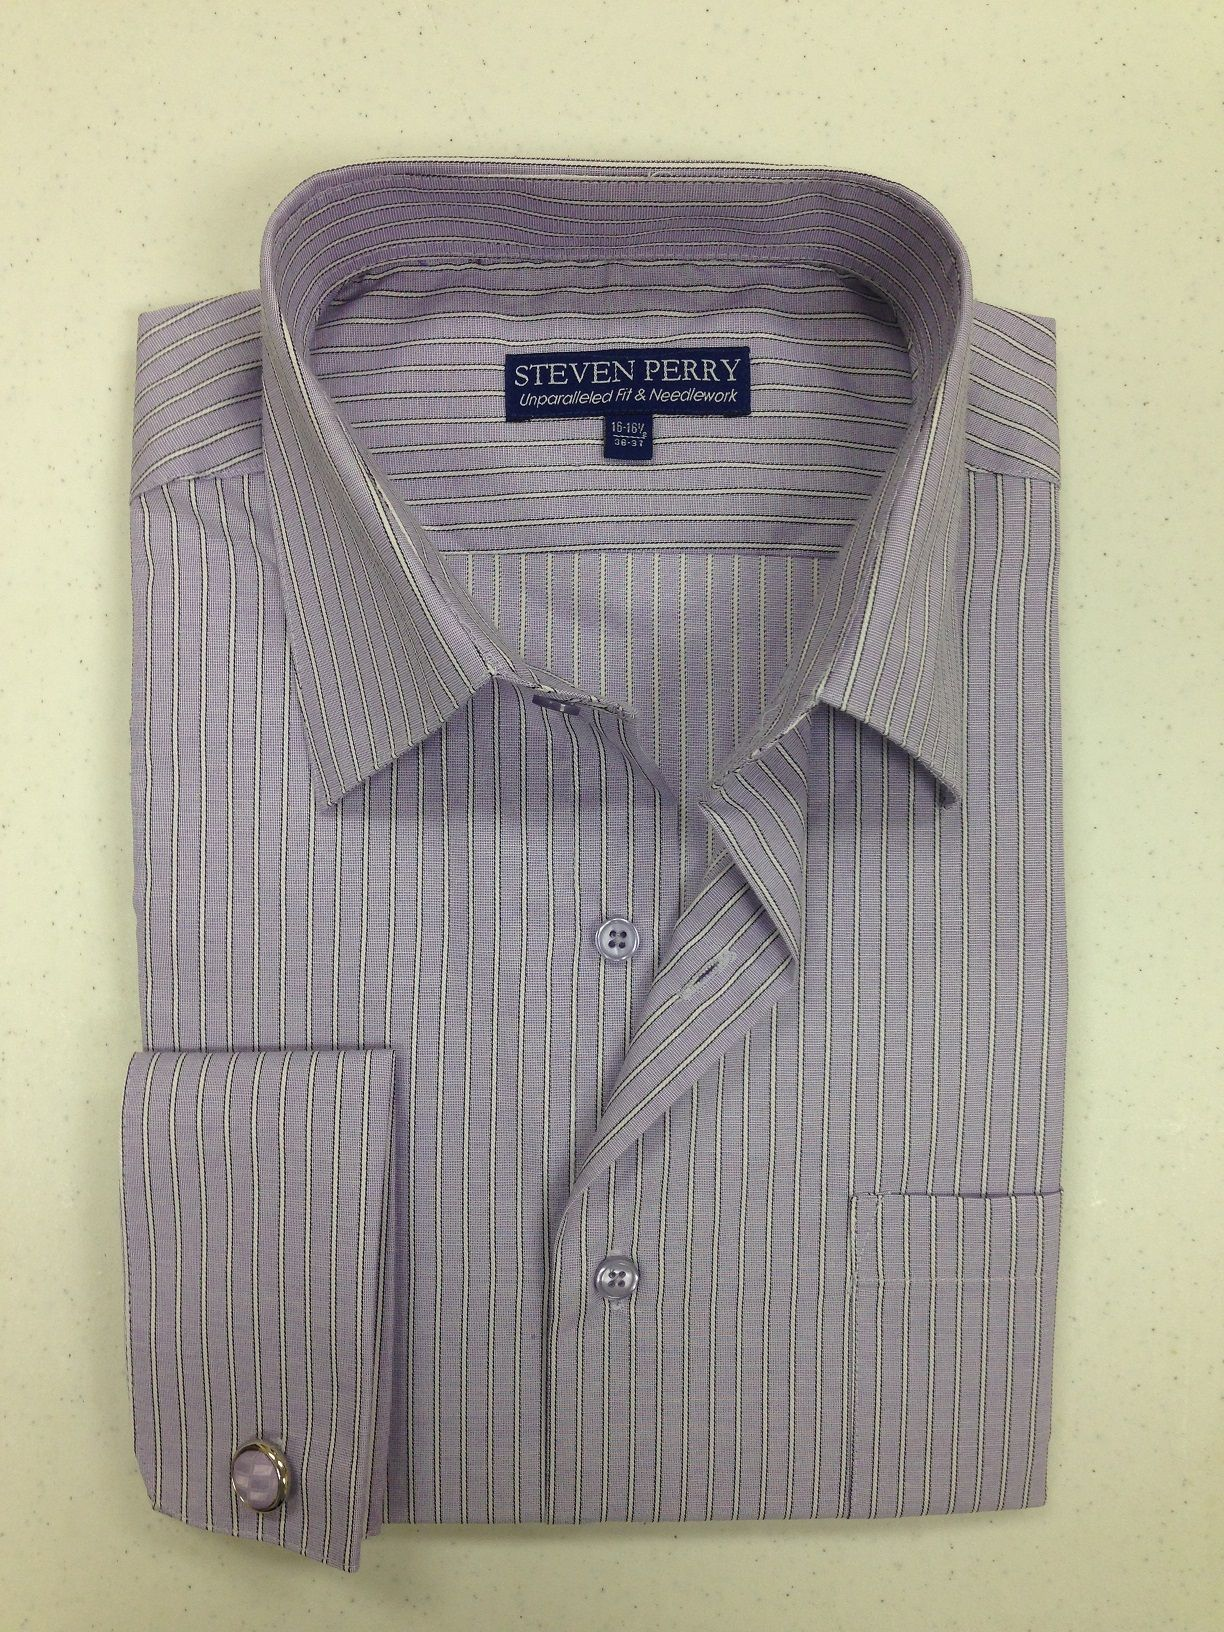 Steven Perry Woven Designer Shirt - Purple Stripes FREE CUFFLINKS